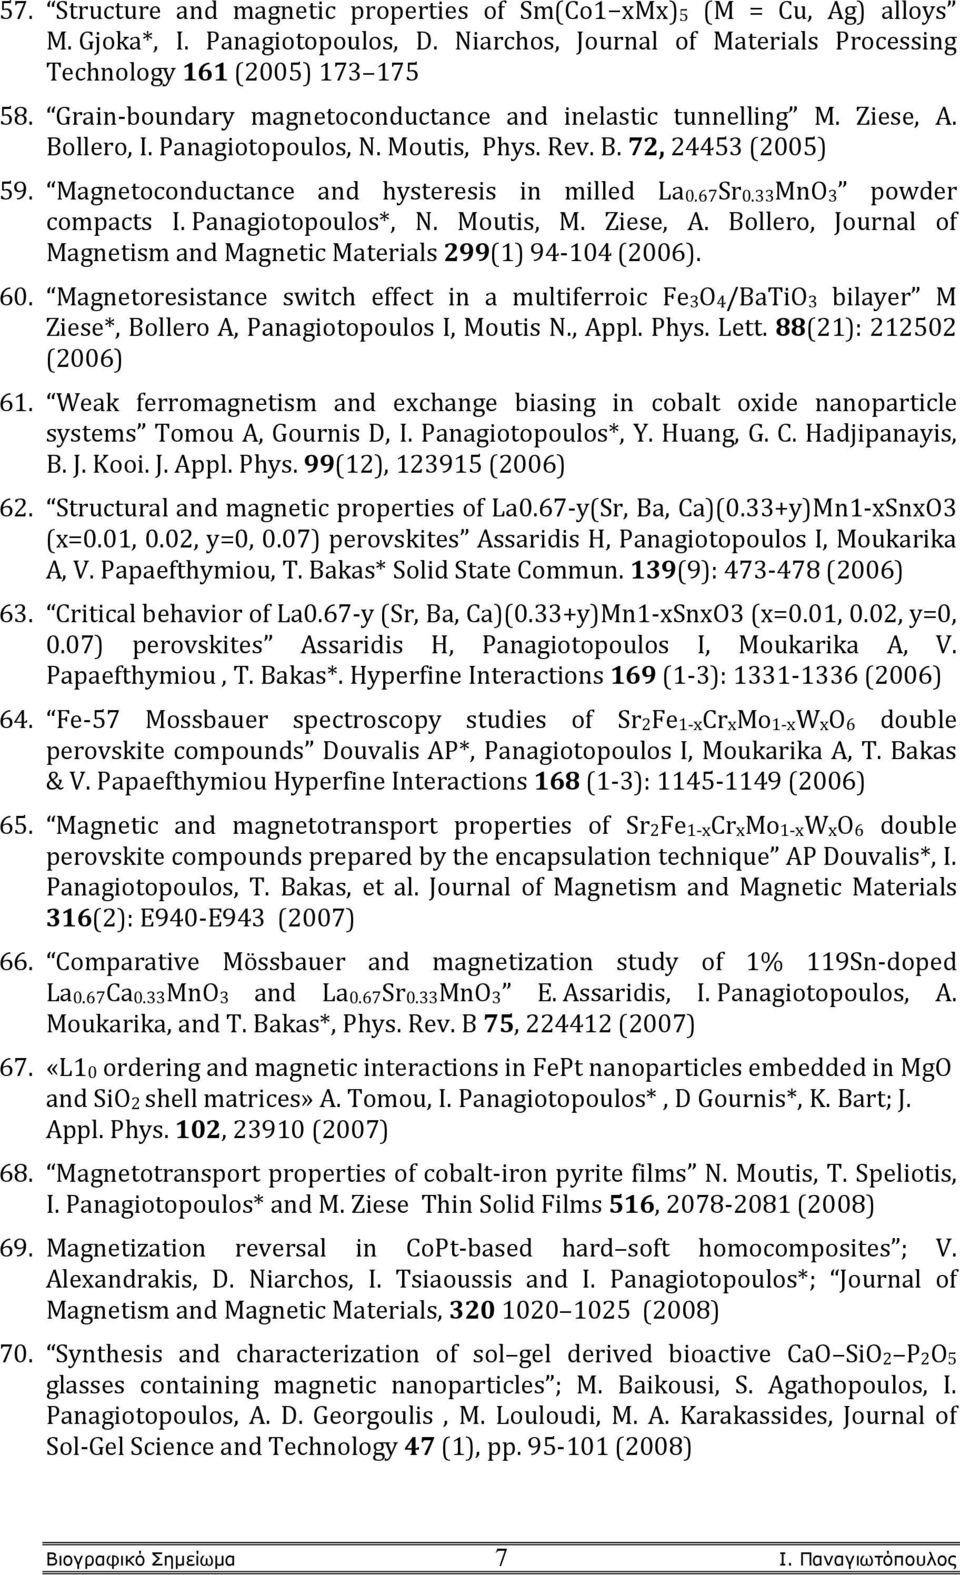 67Sr0.33MnO3 powder compacts I. Panagiotopoulos*, N. Moutis, M. Ziese, A. Bollero, Journal of Magnetism and Magnetic Materials 299(1) 94-104 (2006). 60.